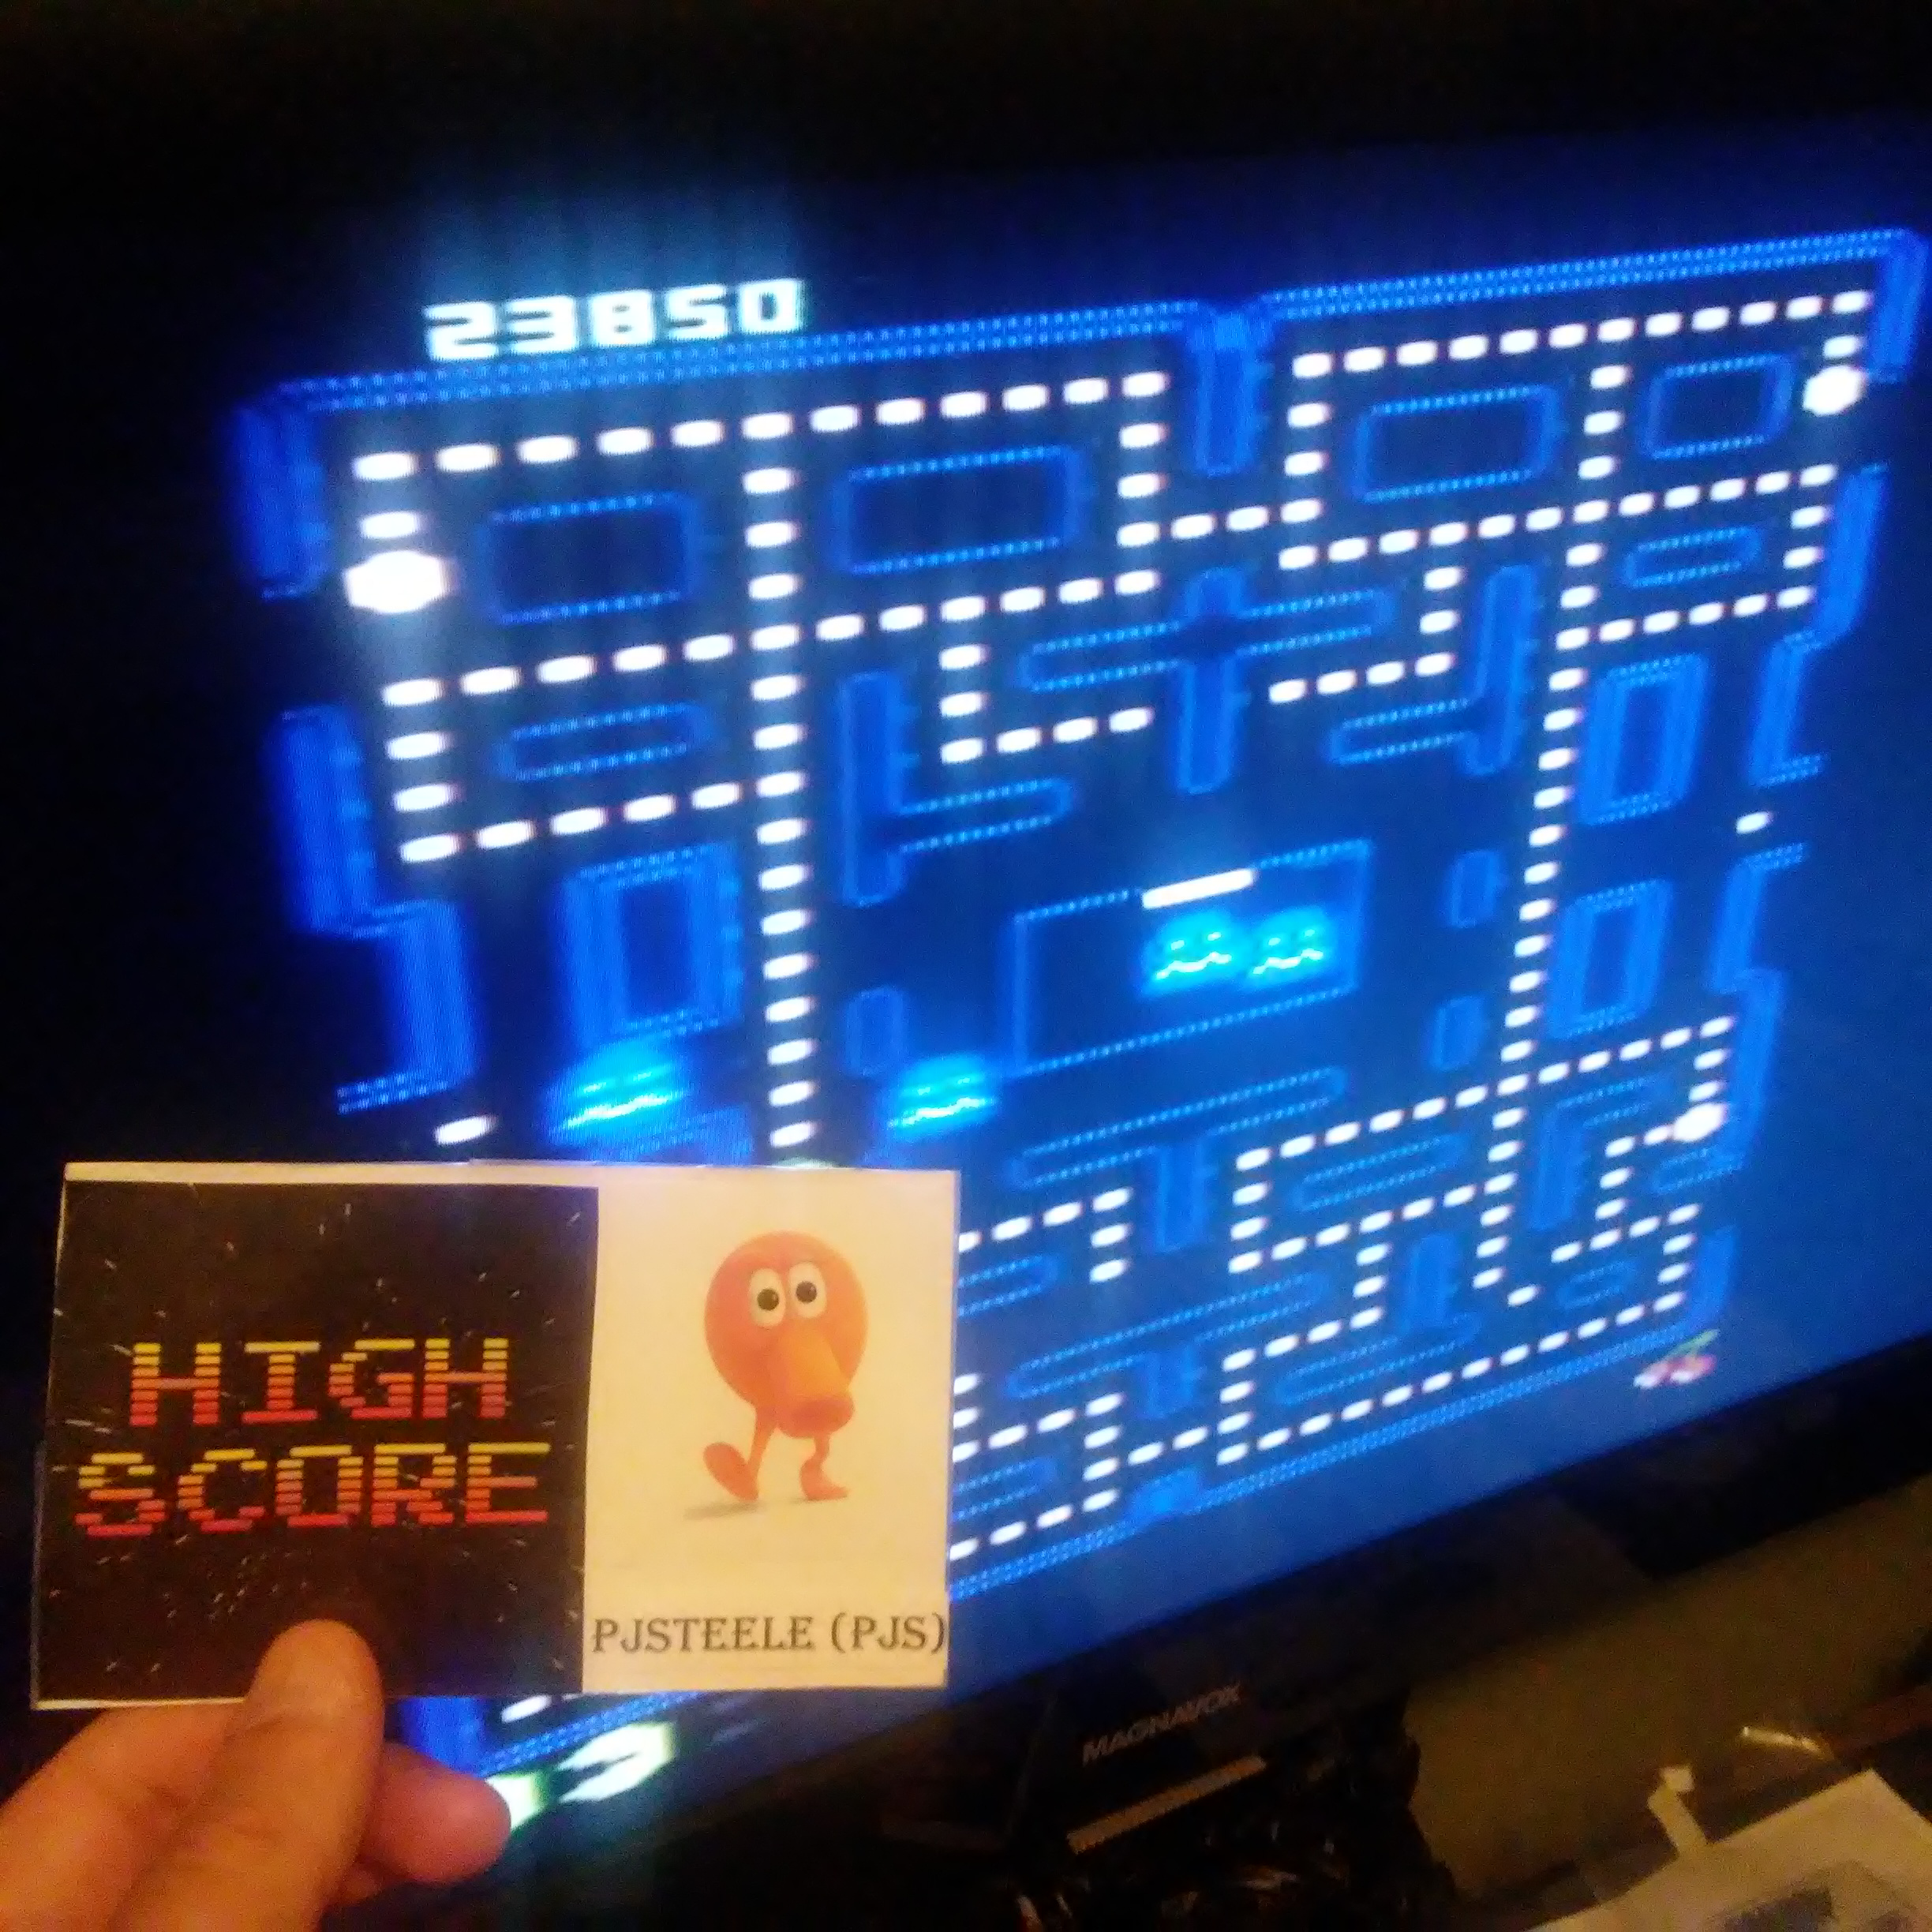 Pjsteele: Pac-Man Collection: Puck Man [Cherries/Plus Off/Fast Off] (Atari 7800) 23,850 points on 2018-07-05 21:43:39